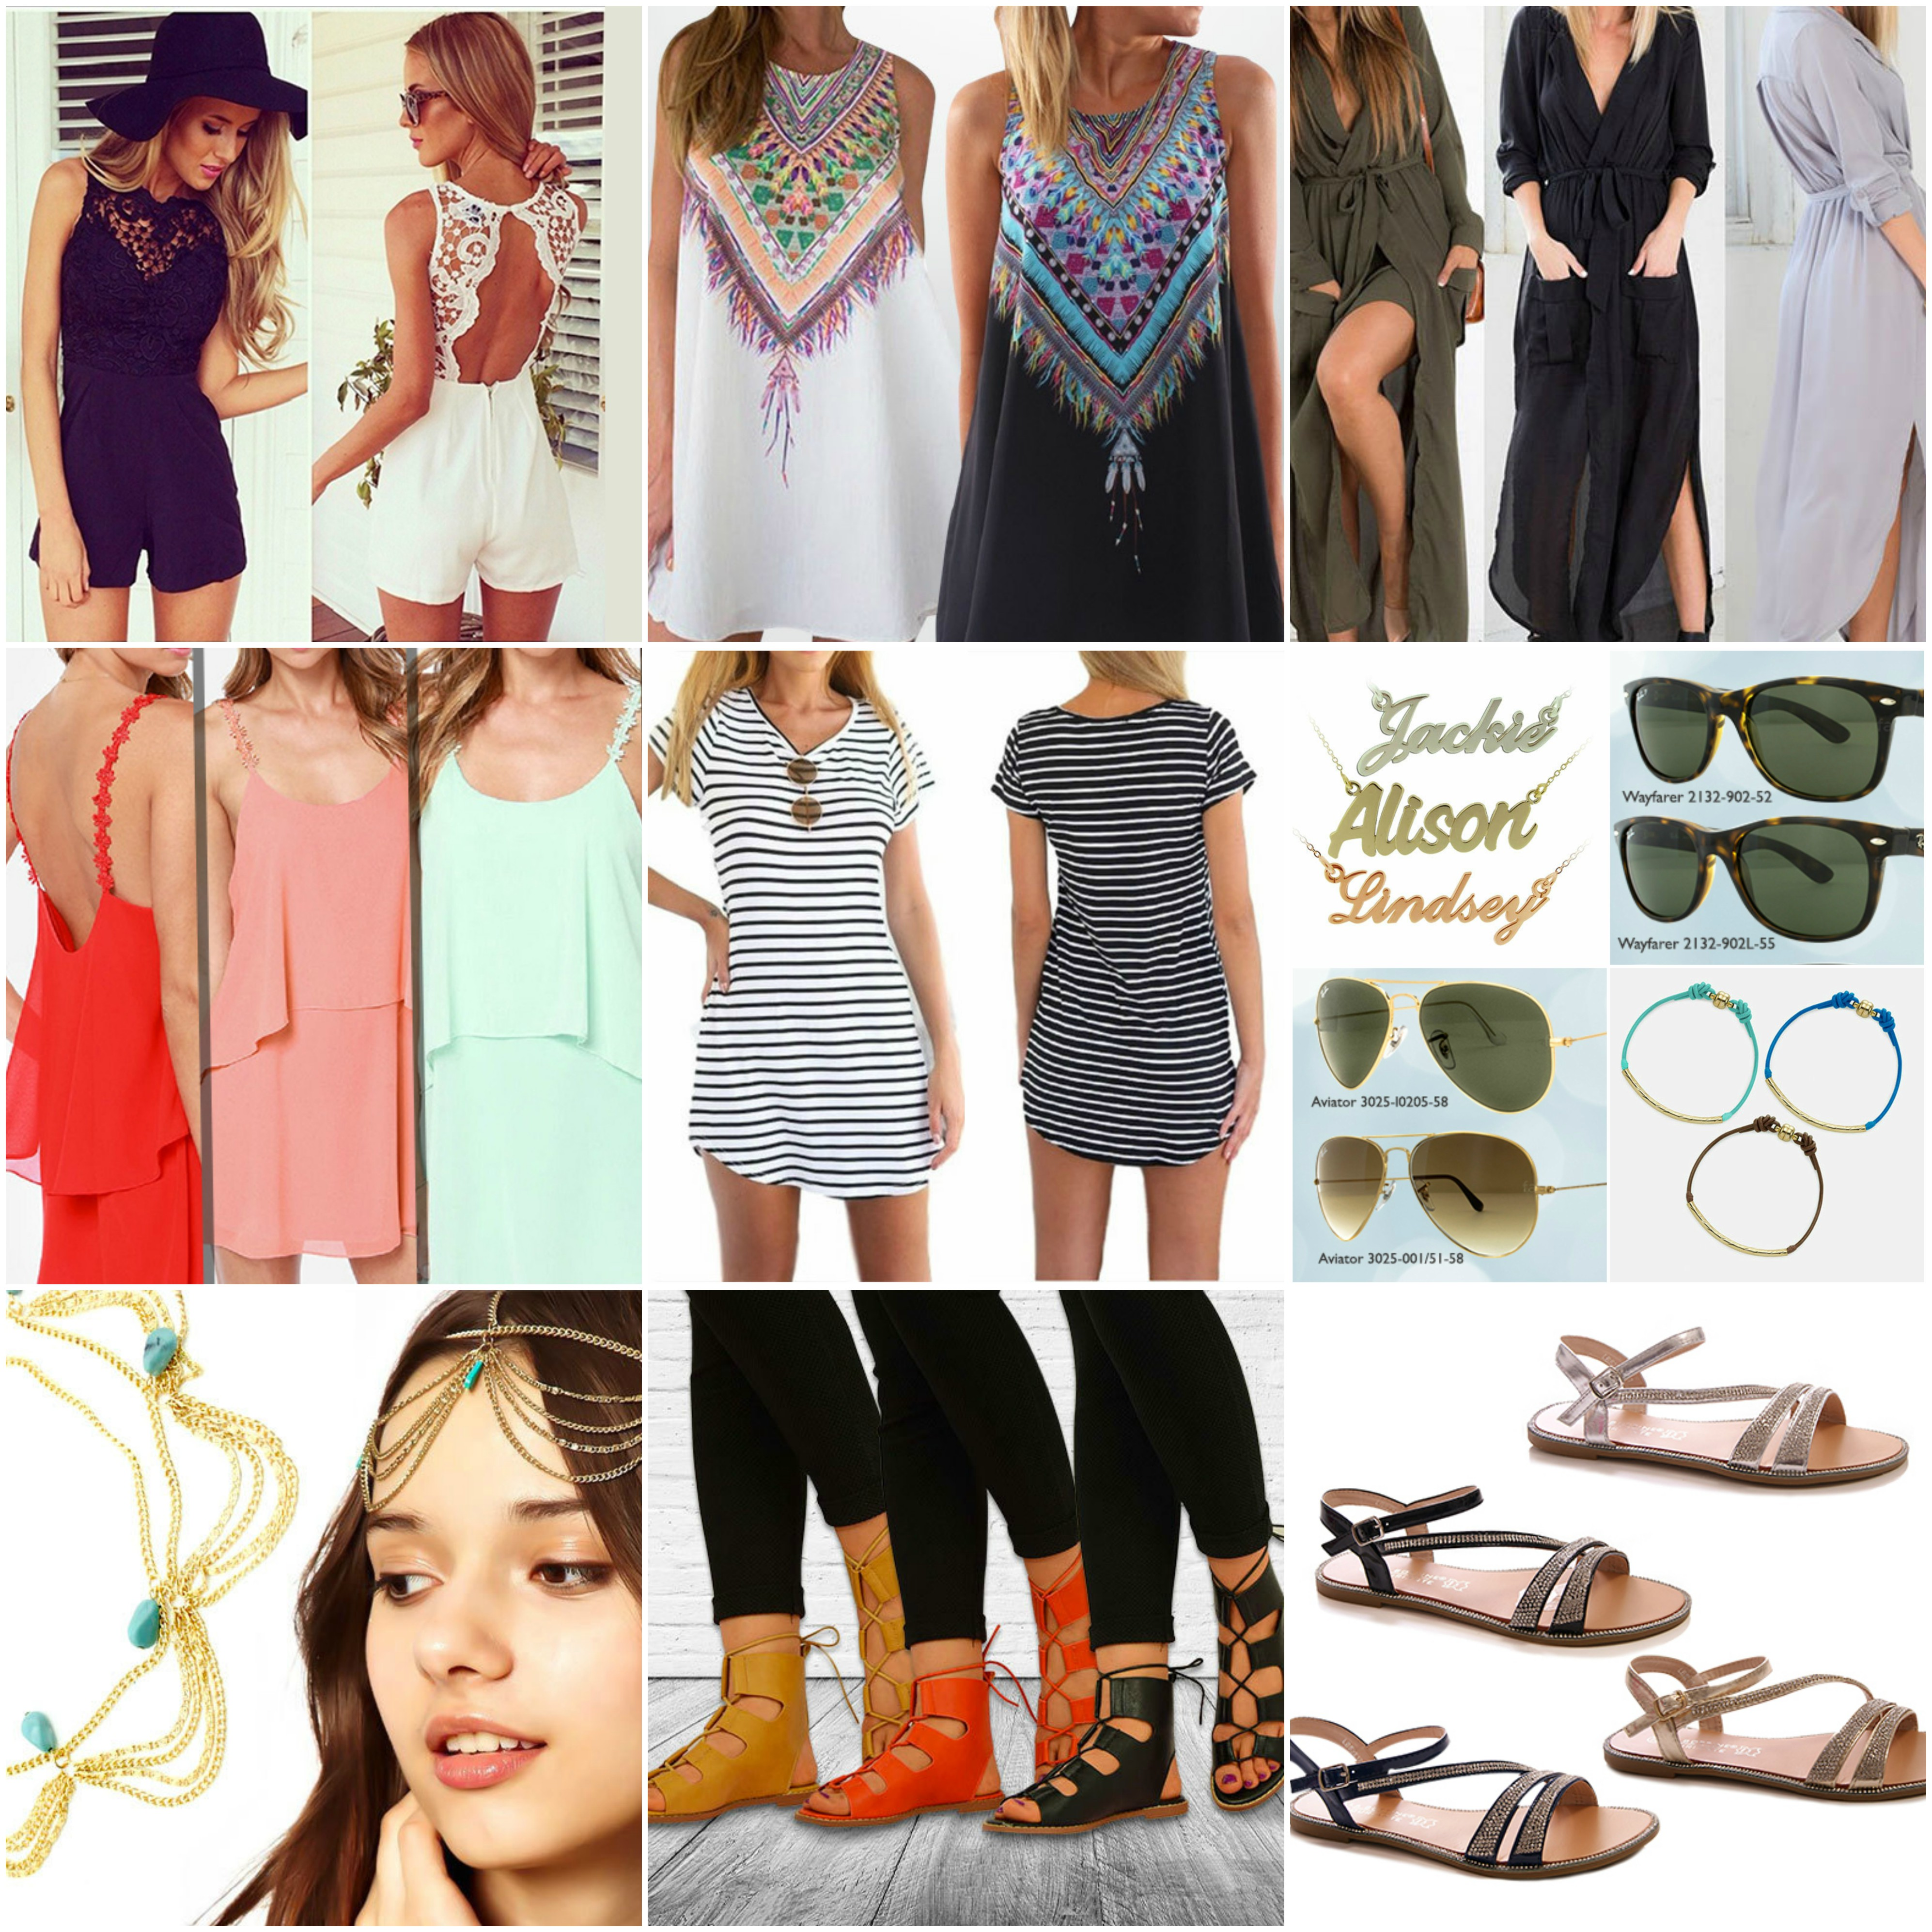 Festival Fashion, Coachella, Sandals, Dress, Ray Bans